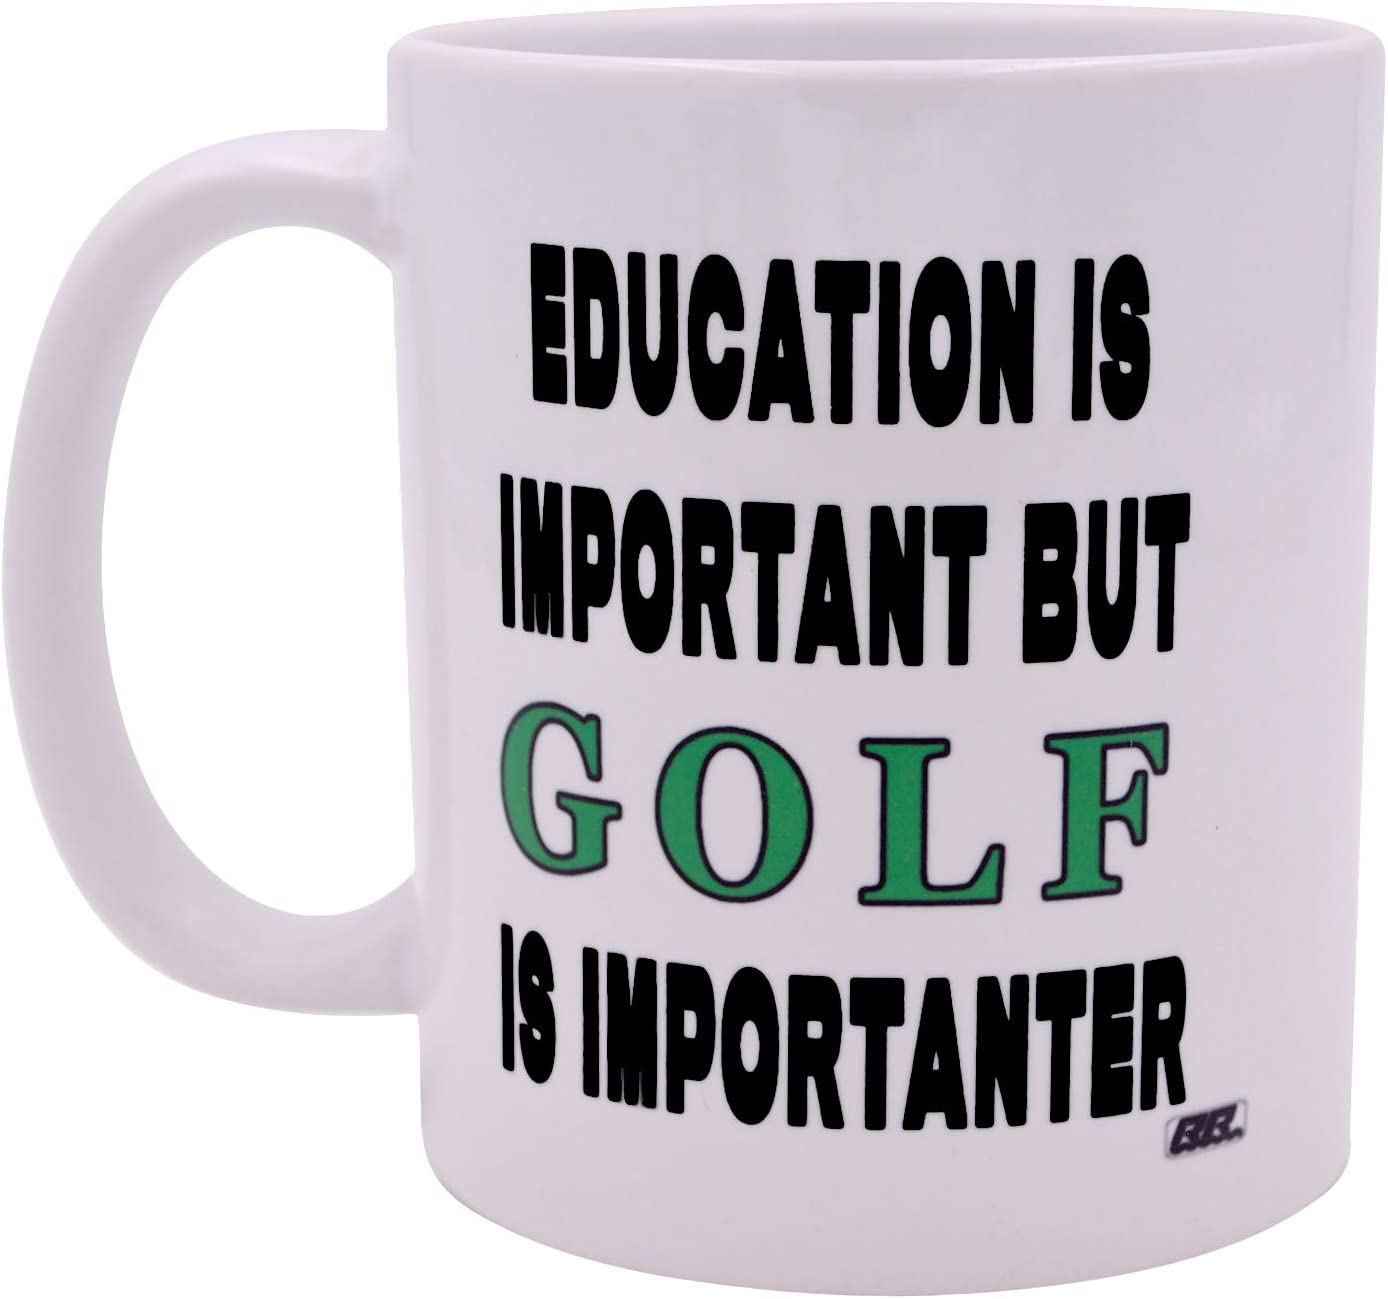 Best Funny Golf Coffee Mug Education is Important But Golf is Importanter Novelty Cup Joke Great Gag Gift Idea For Office Work Adult Humor Employee Boss Golfers